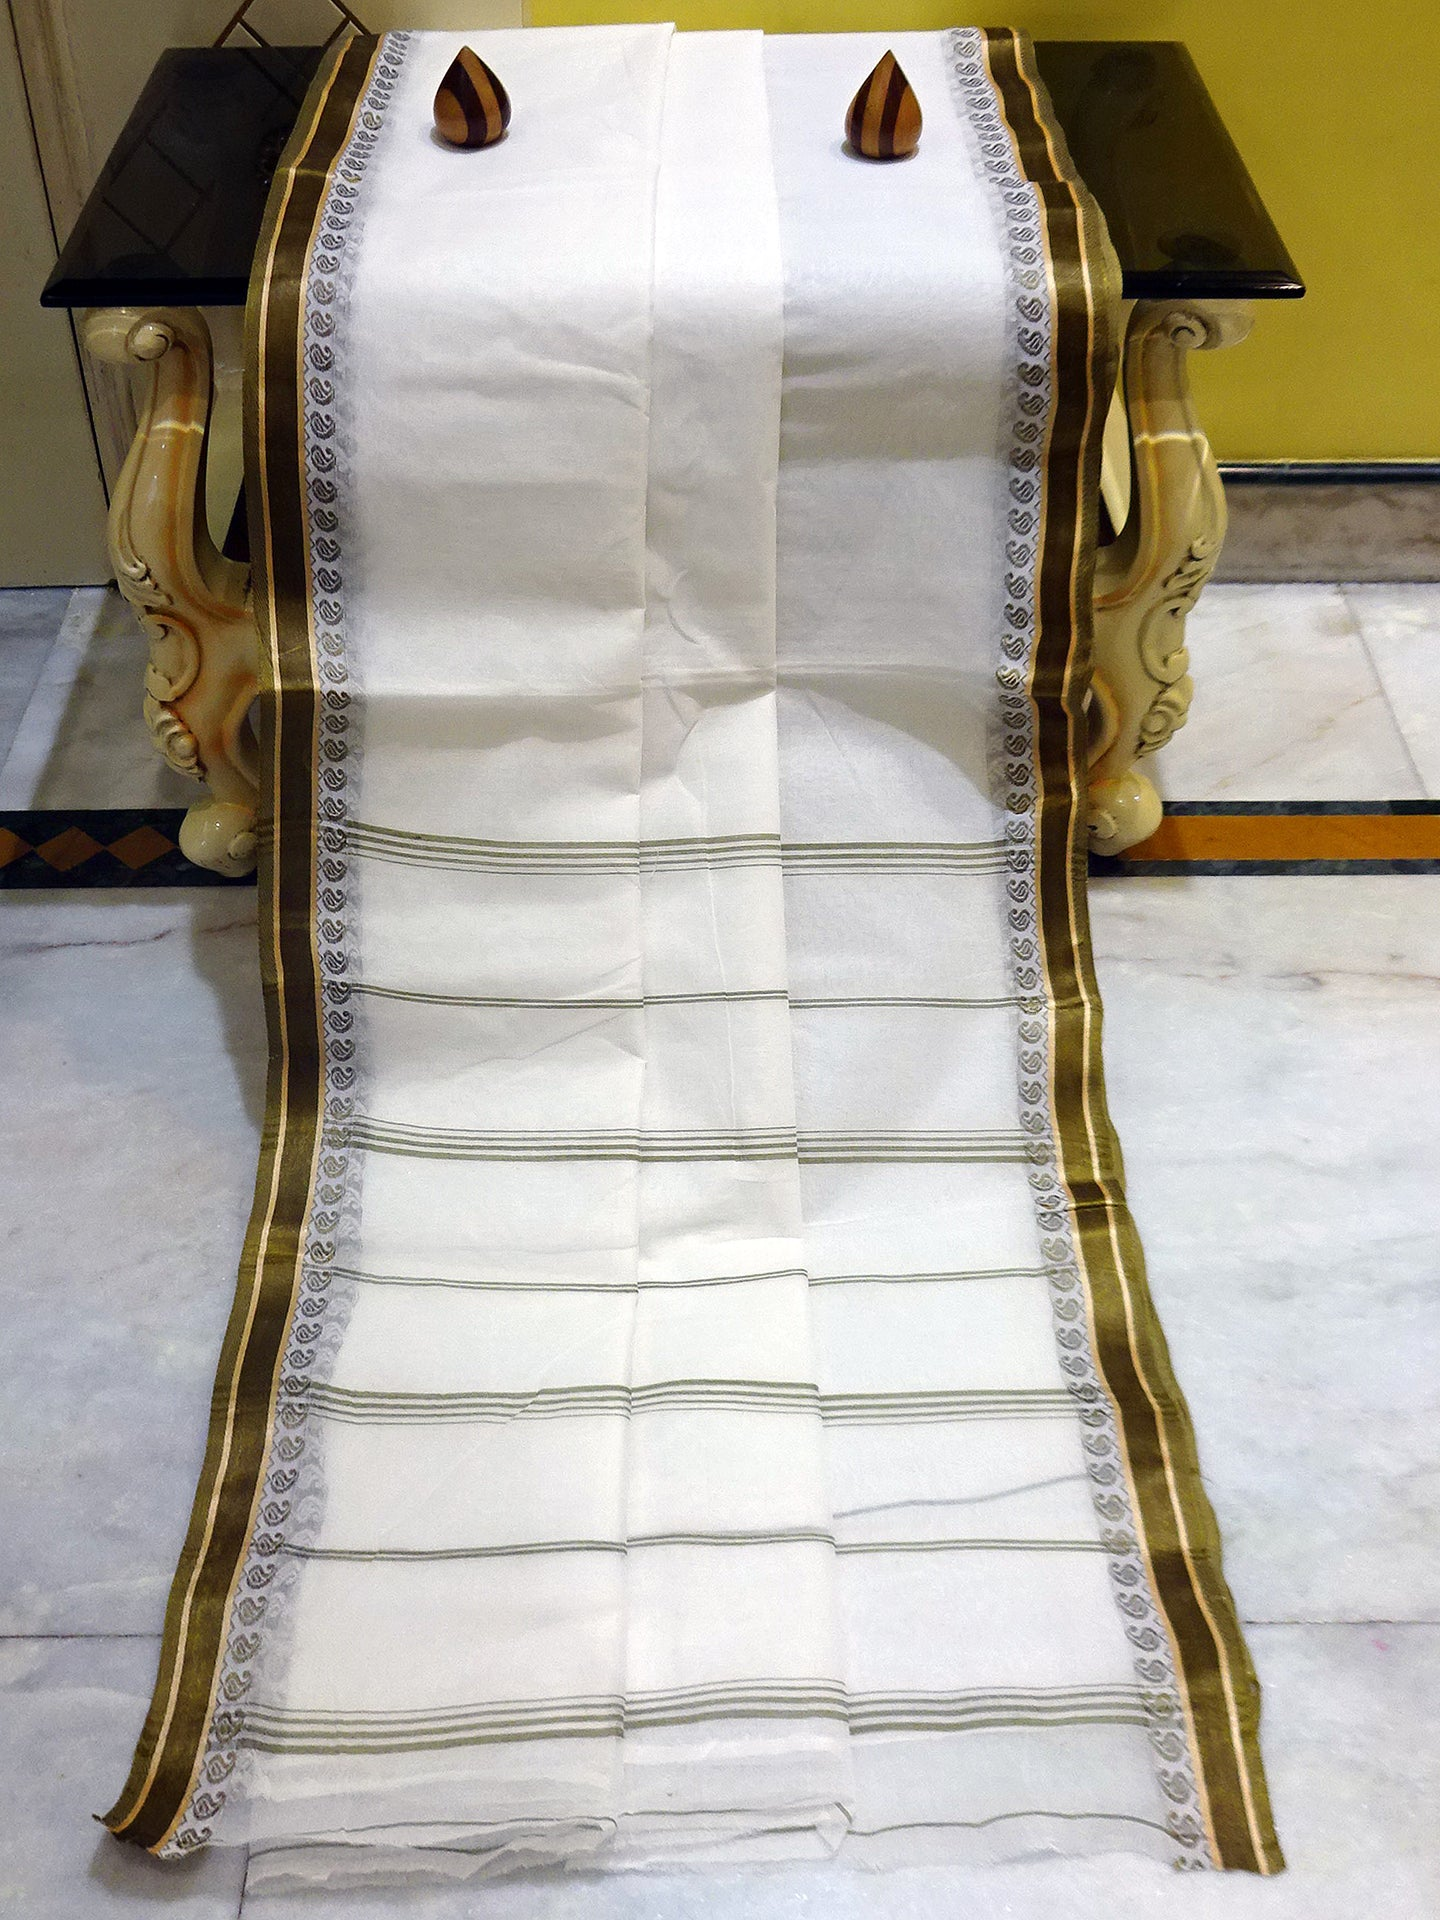 Bengal Handloom Cotton Saree in White, Army Green and Gold